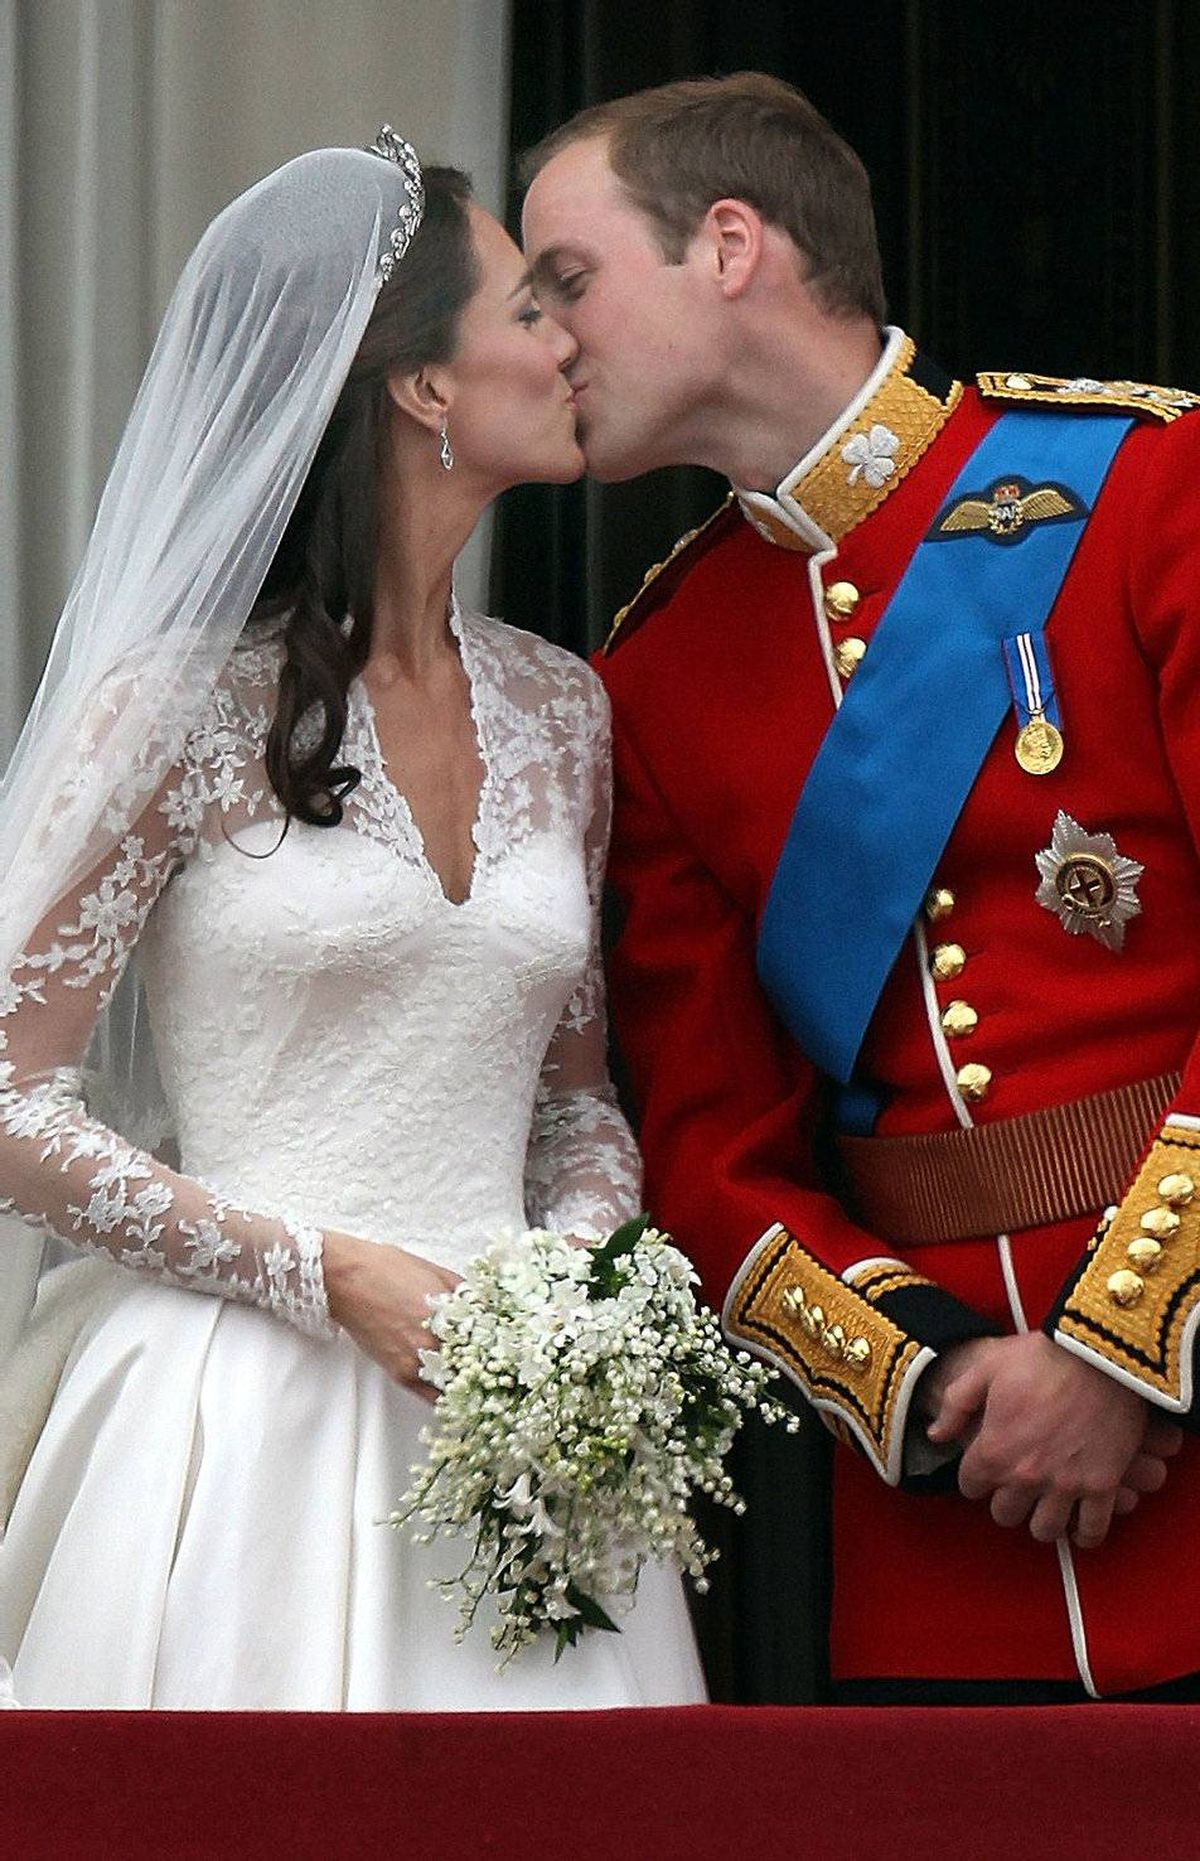 And before fans could finish their first pot of tea, the couple were married and kissing, politely. And everyone was happy.